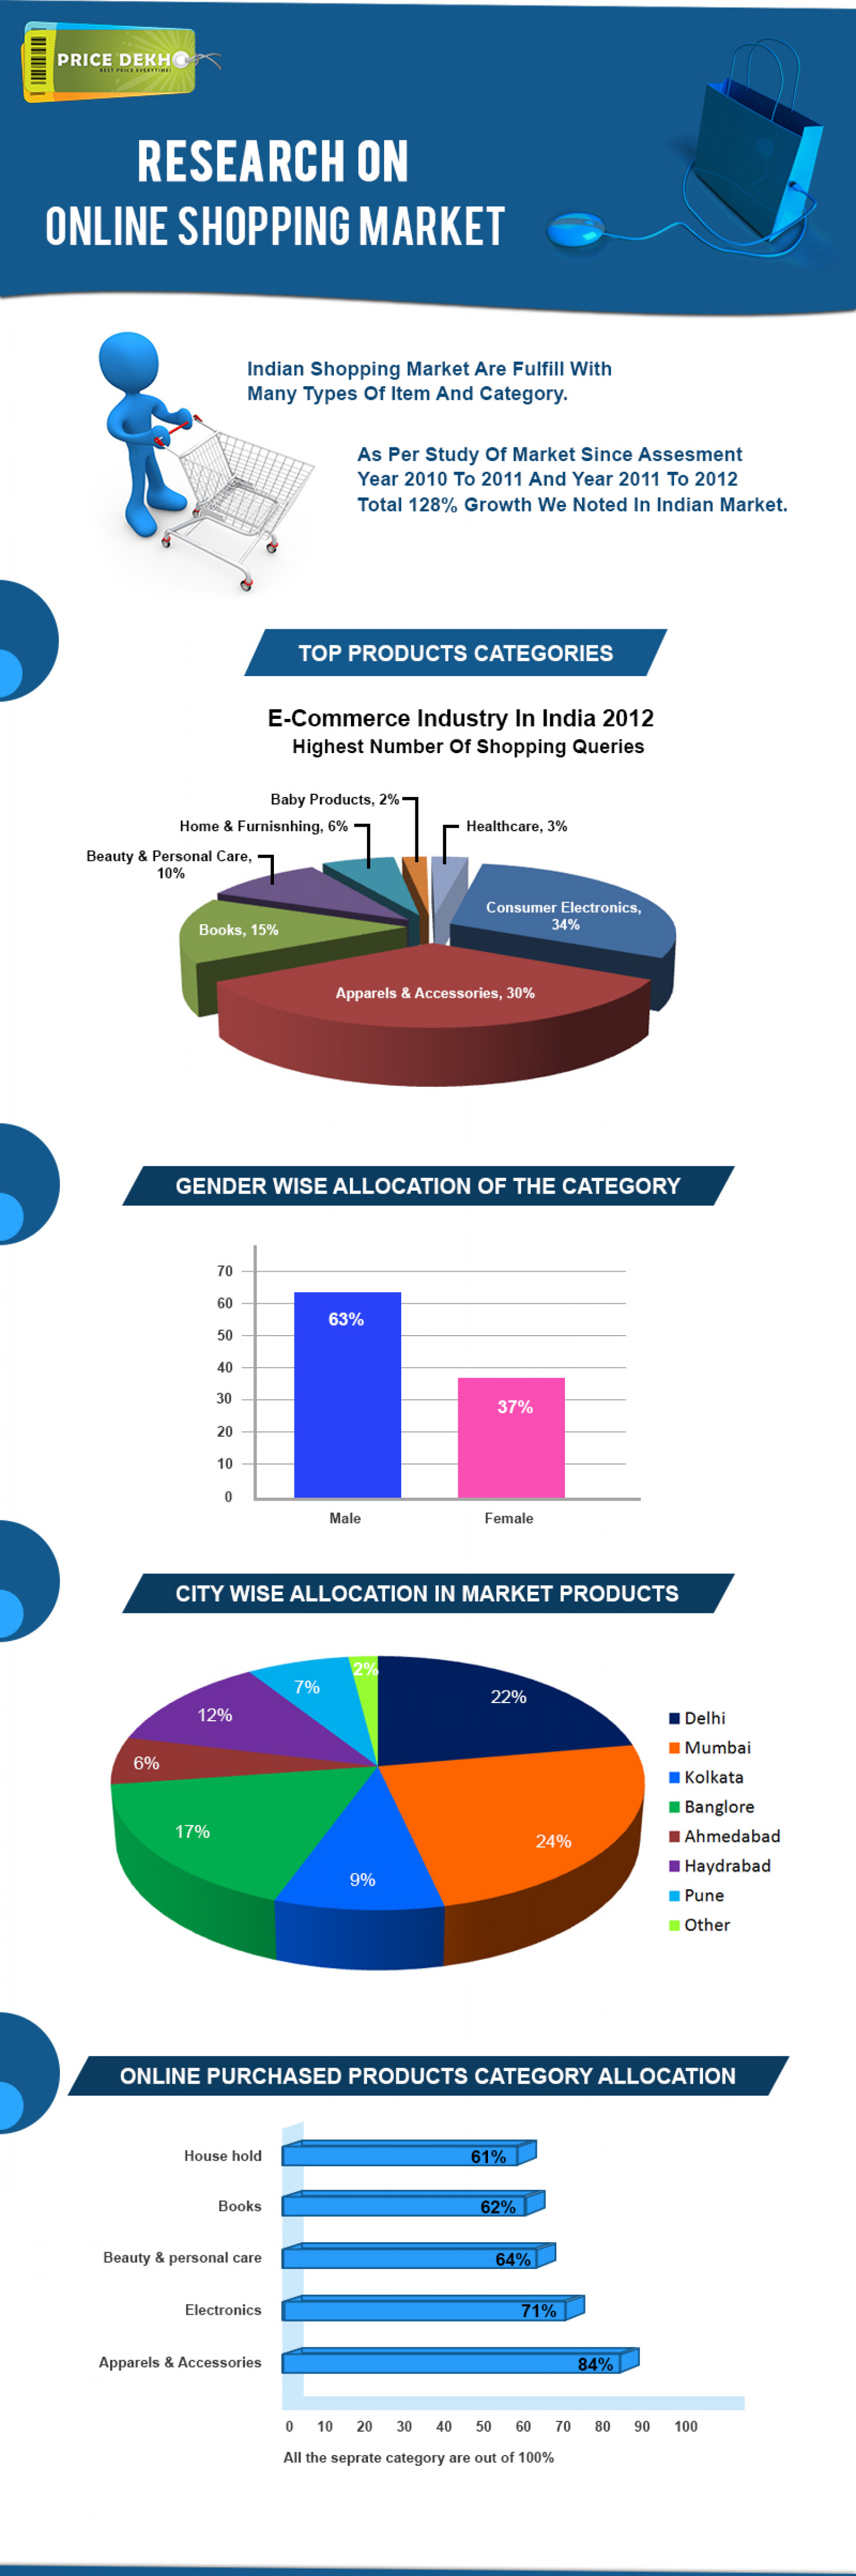 Research On Online Shopping Market Infographic